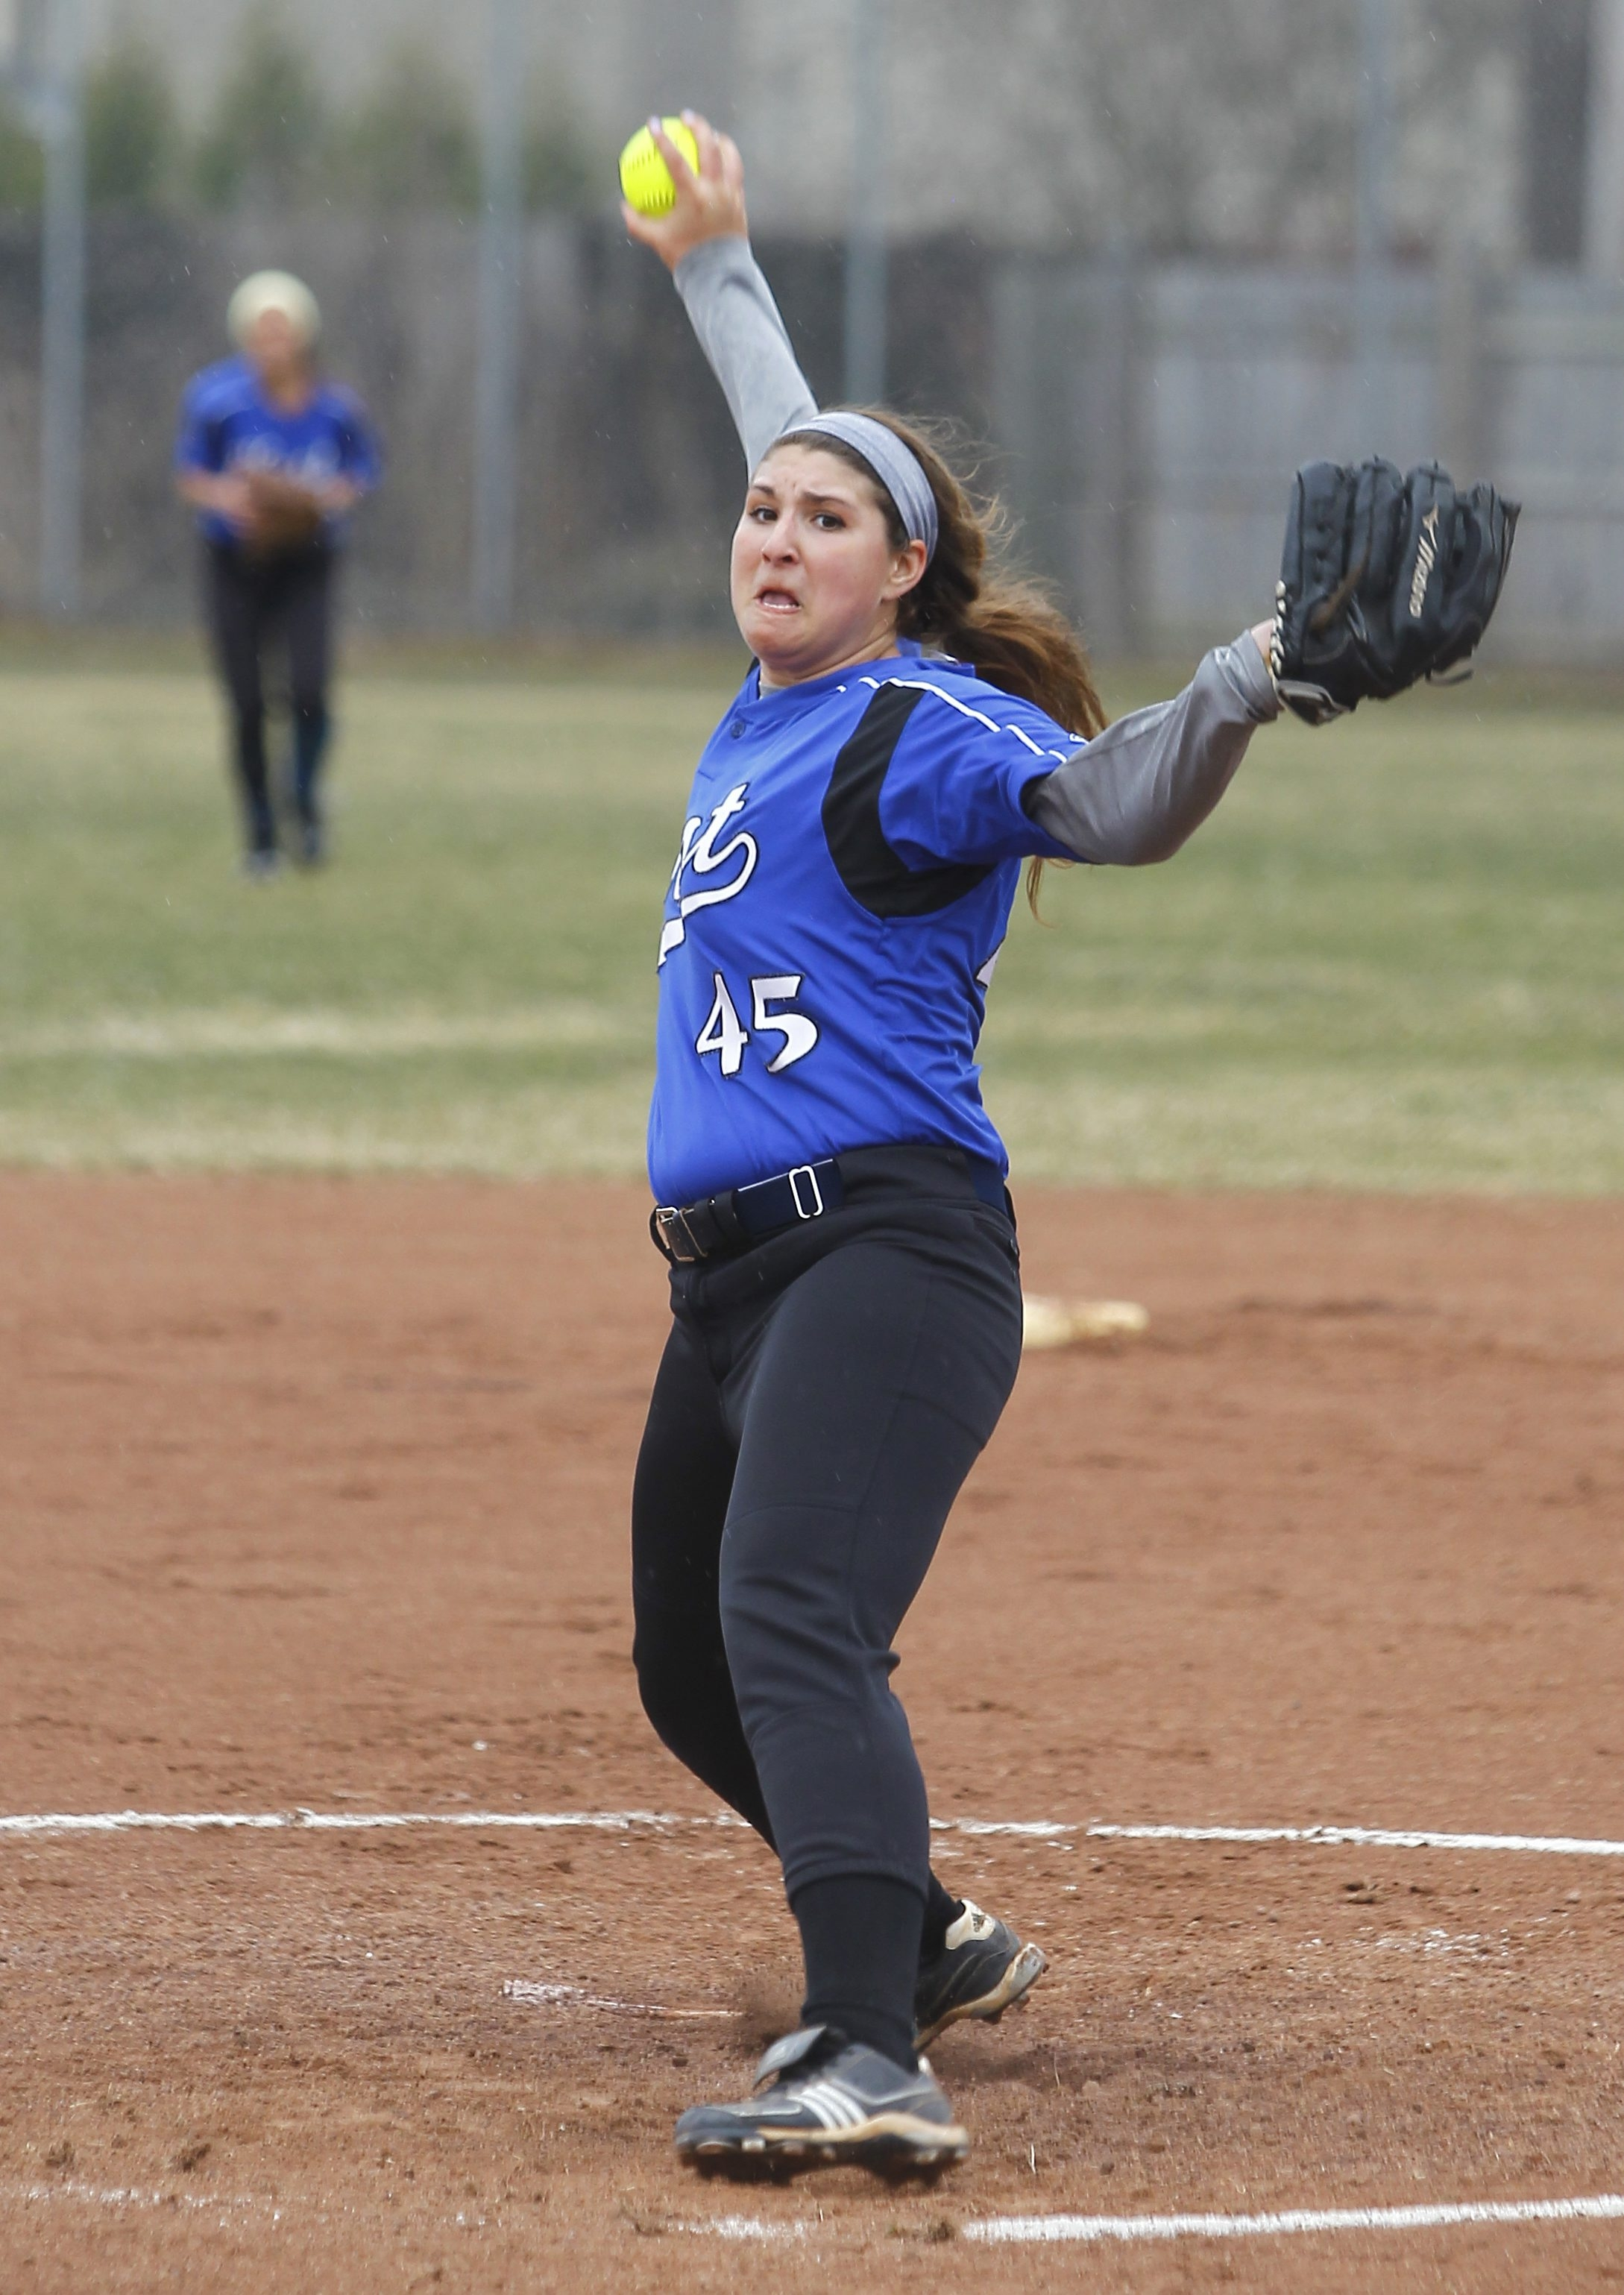 Pitcher Charlotte Miller and the Kenmore West Blue Devils share the No. 6 spot in the latest large school softball poll.